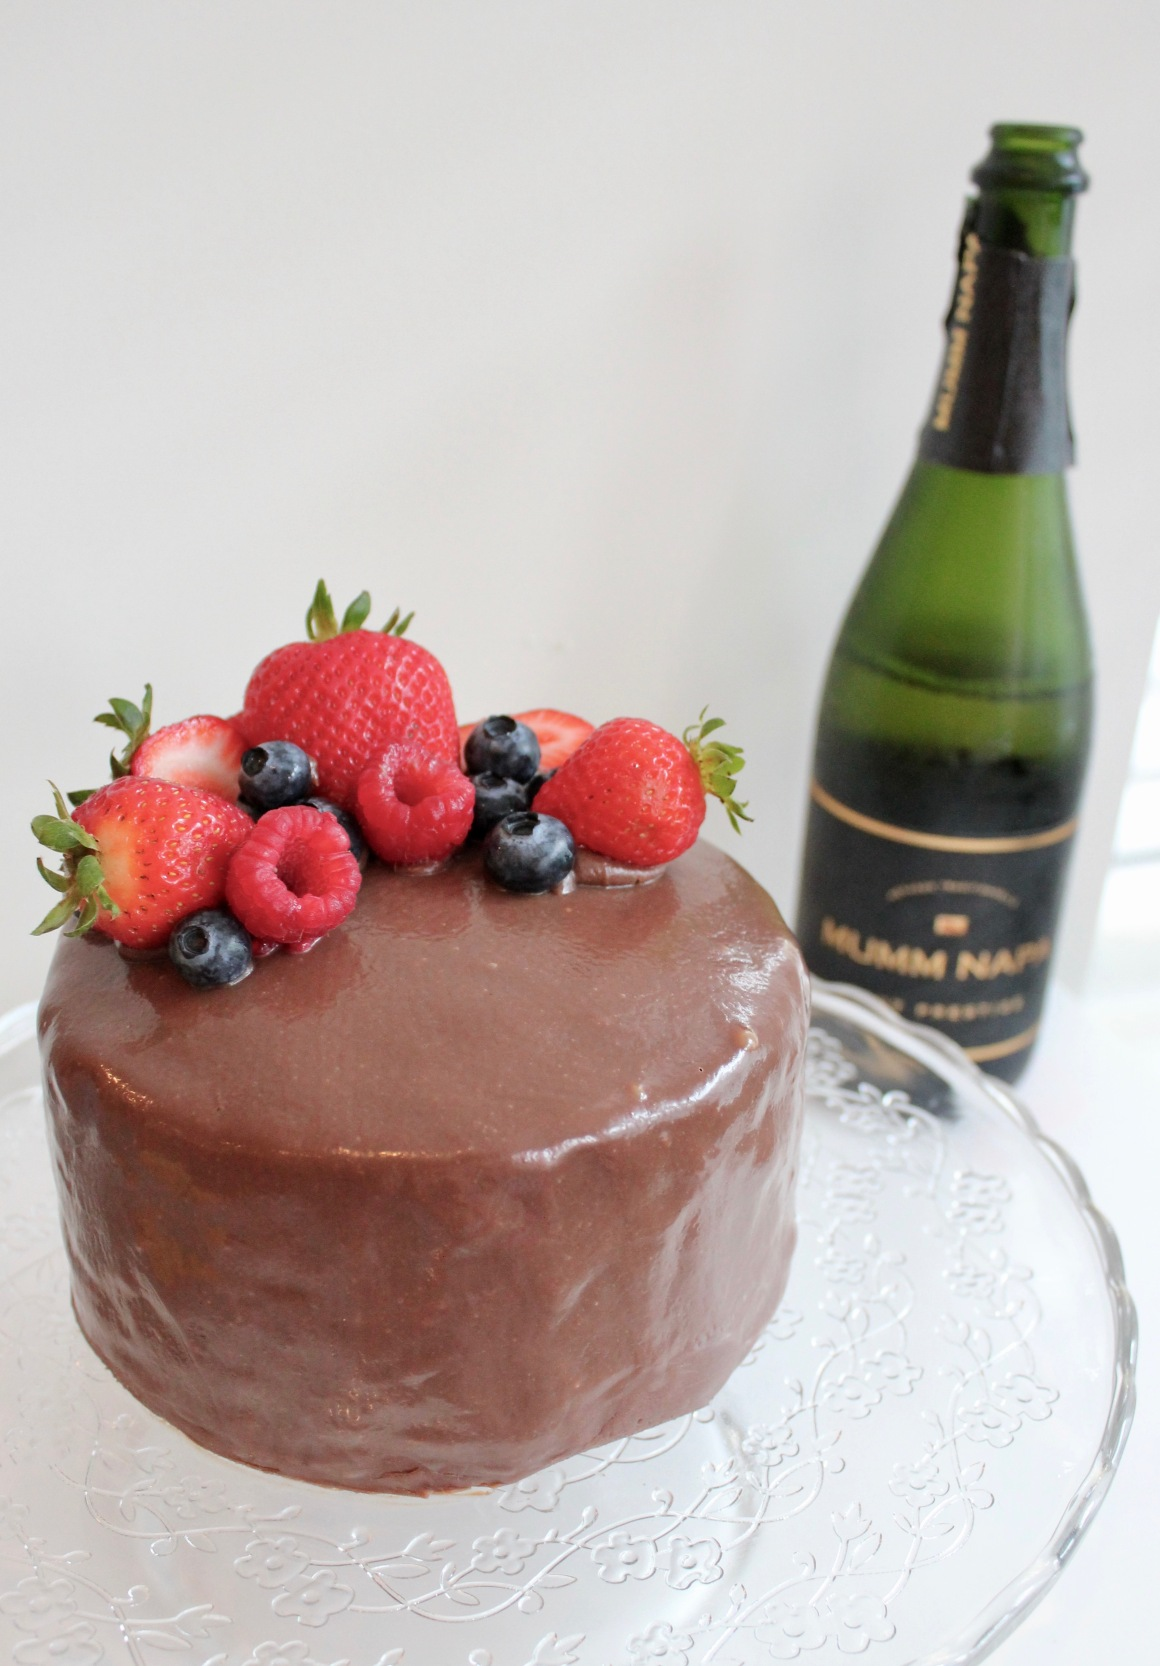 Berry cake with mumm napa champagne